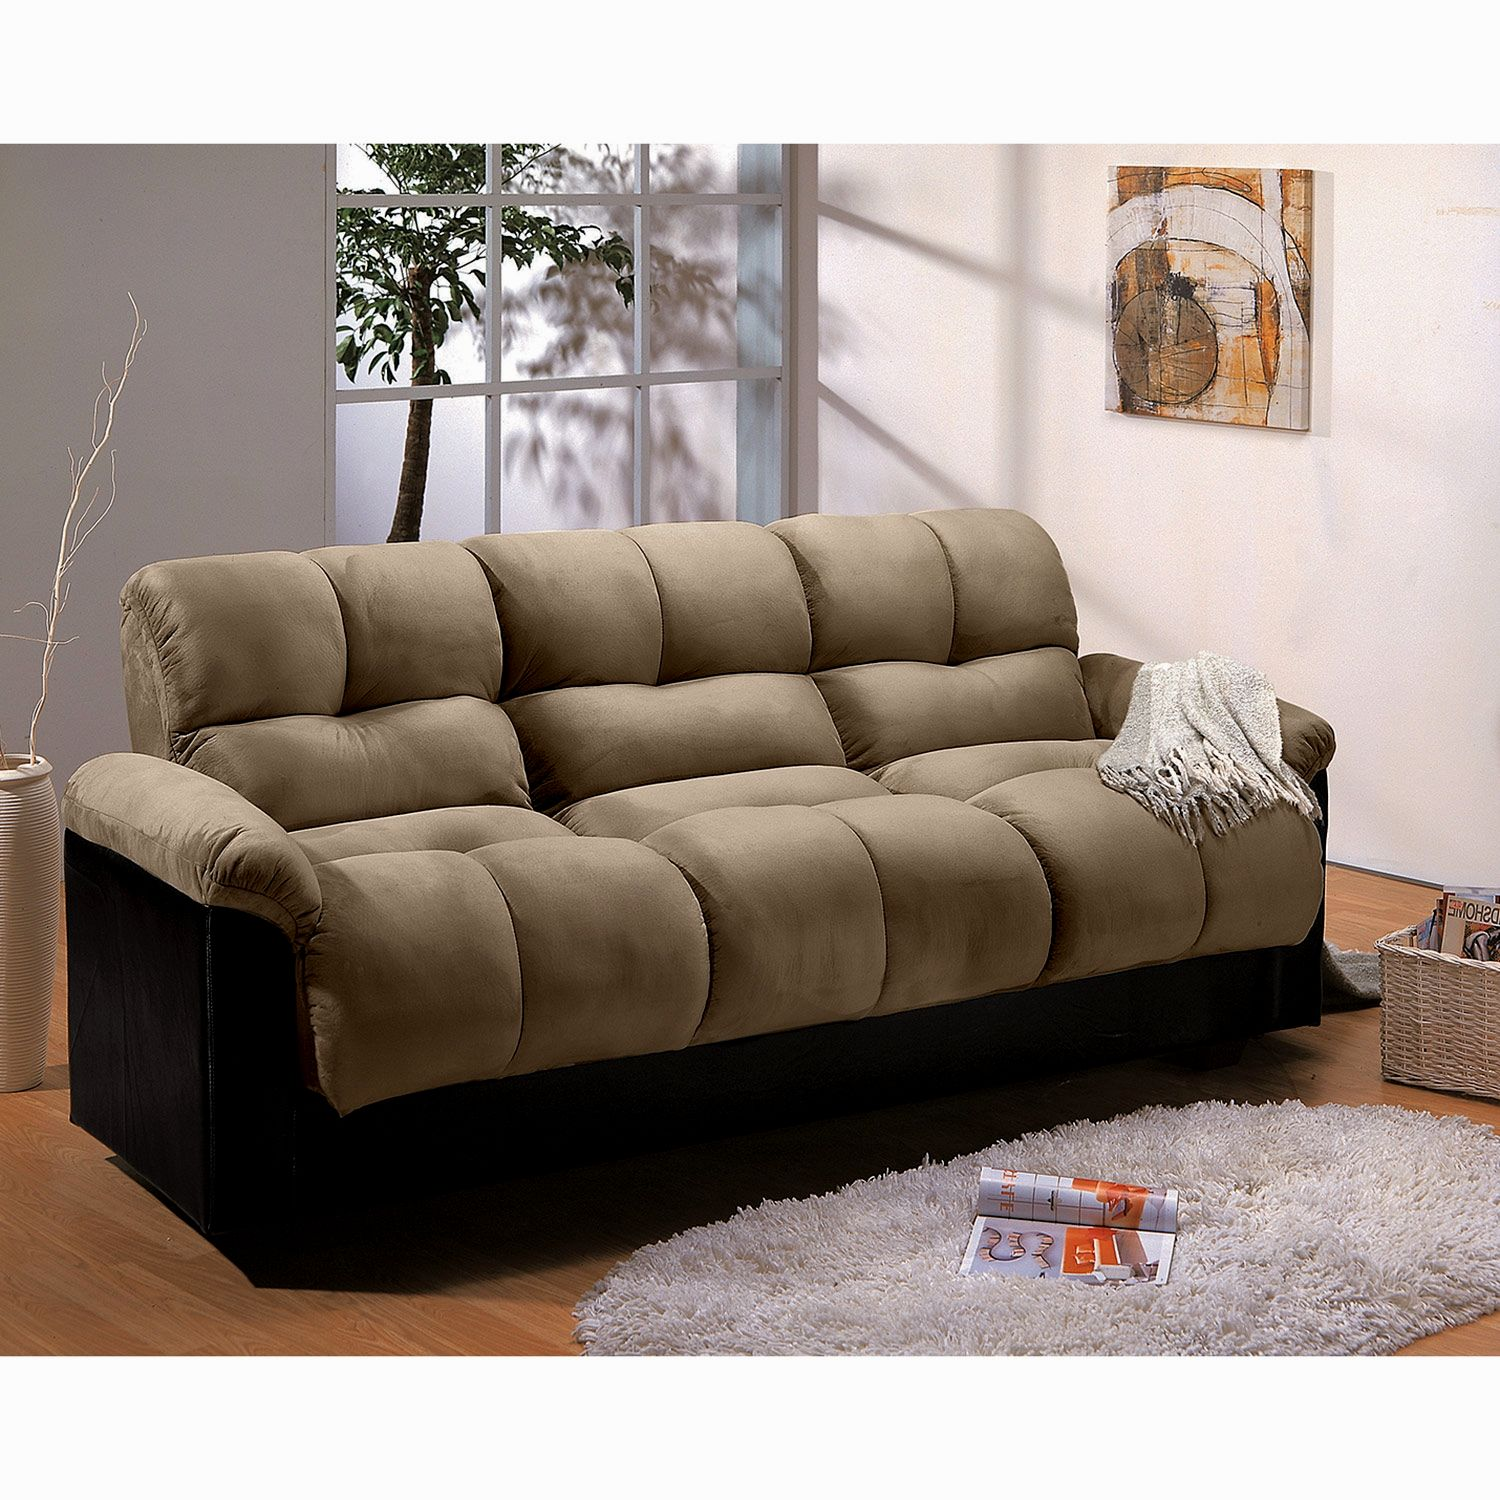 best of big lots sofa sleeper photograph-Inspirational Big Lots sofa Sleeper Pattern